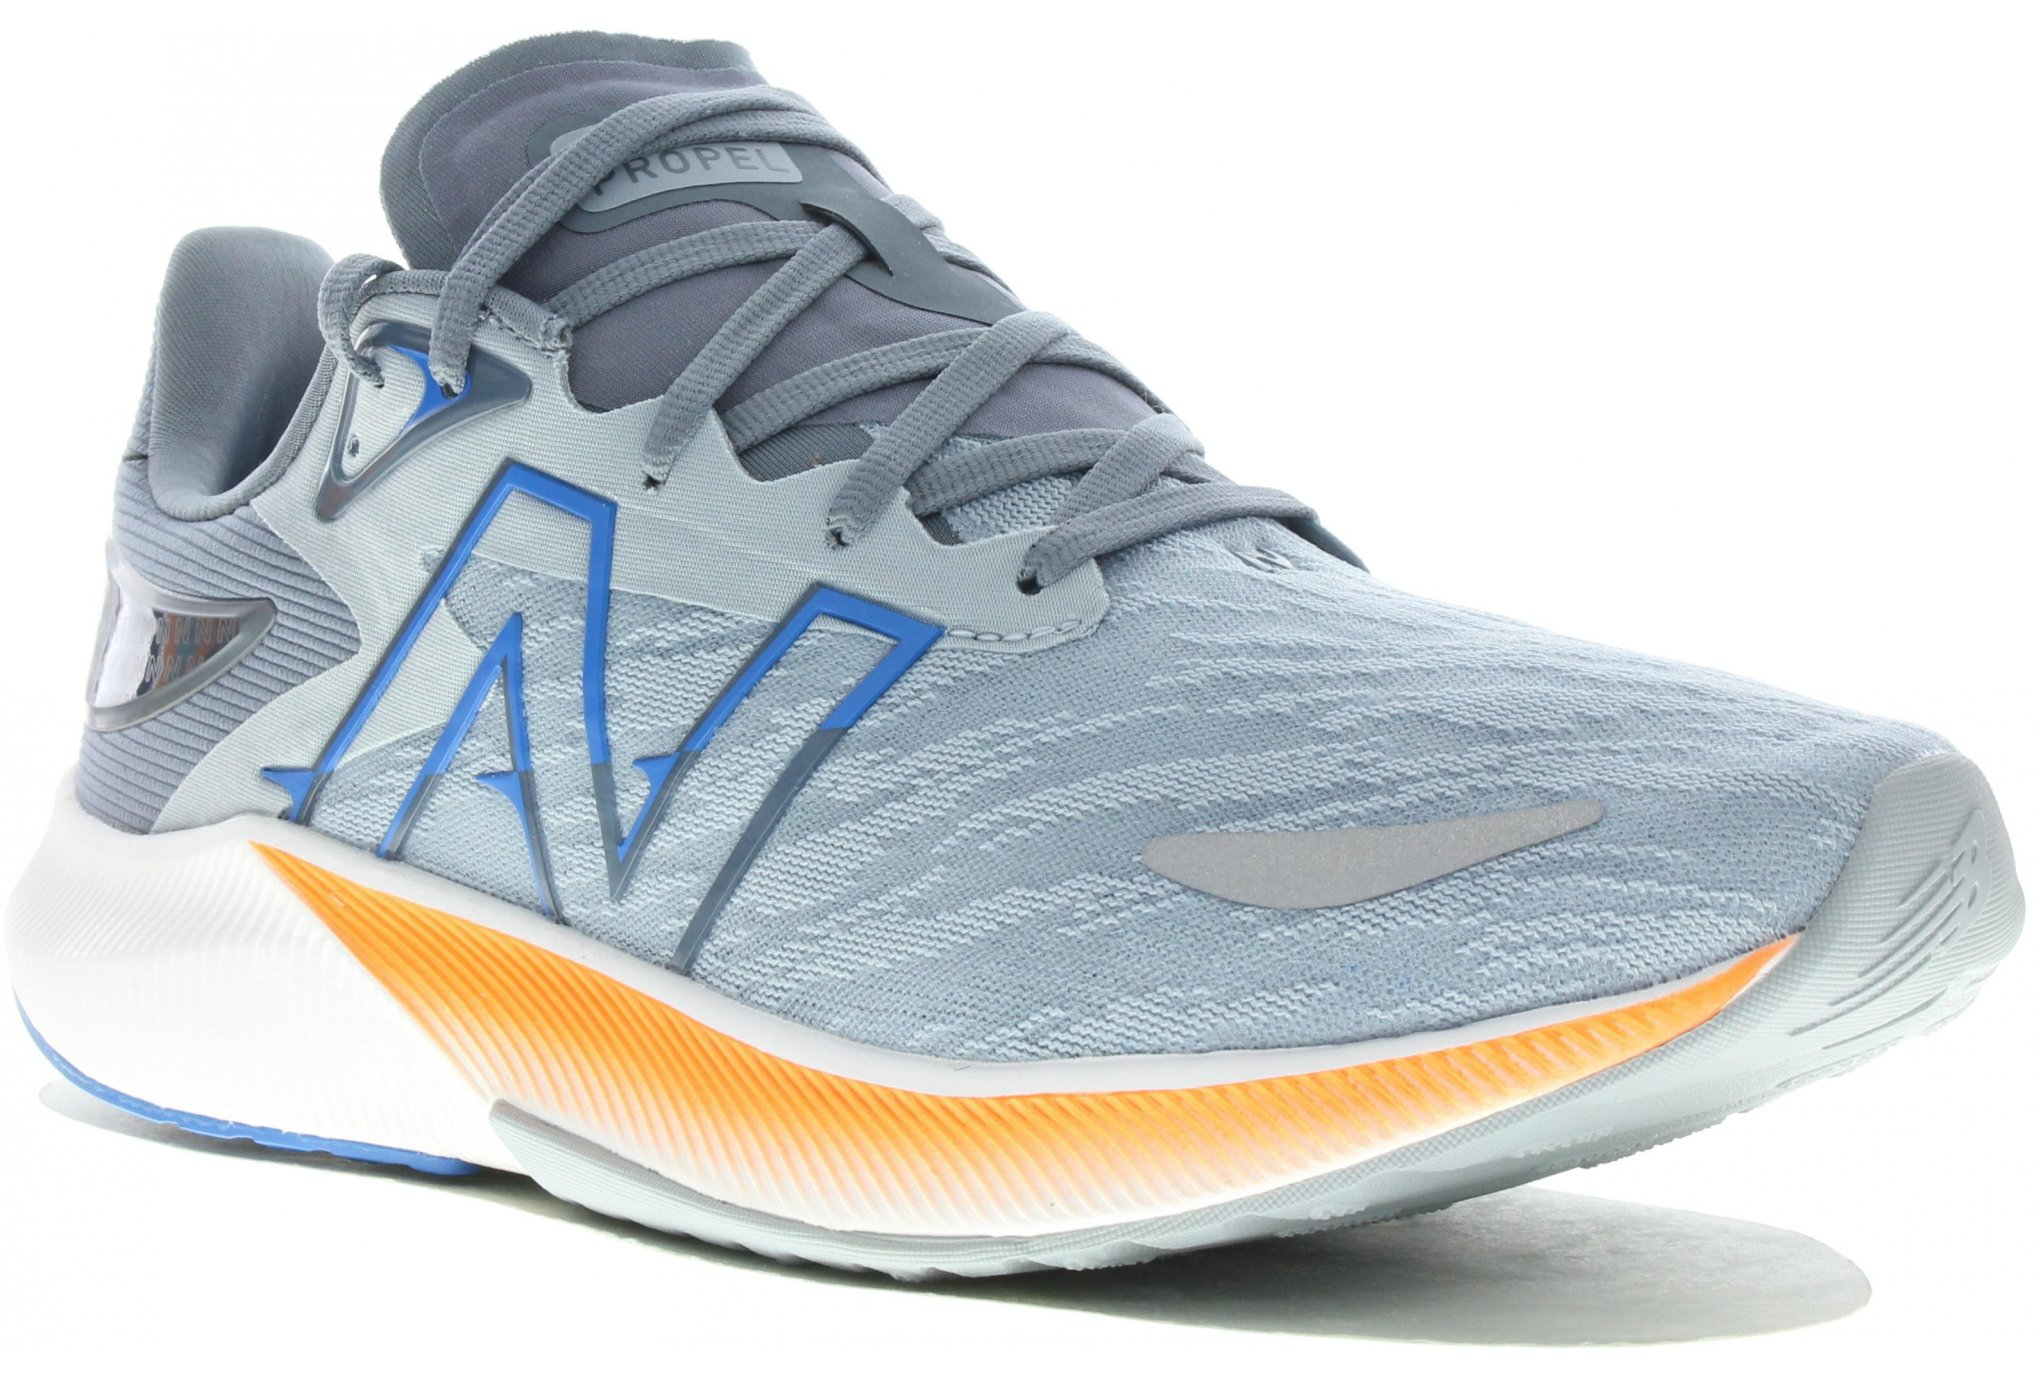 New Balance FuellCell Propel V3 M Chaussures homme